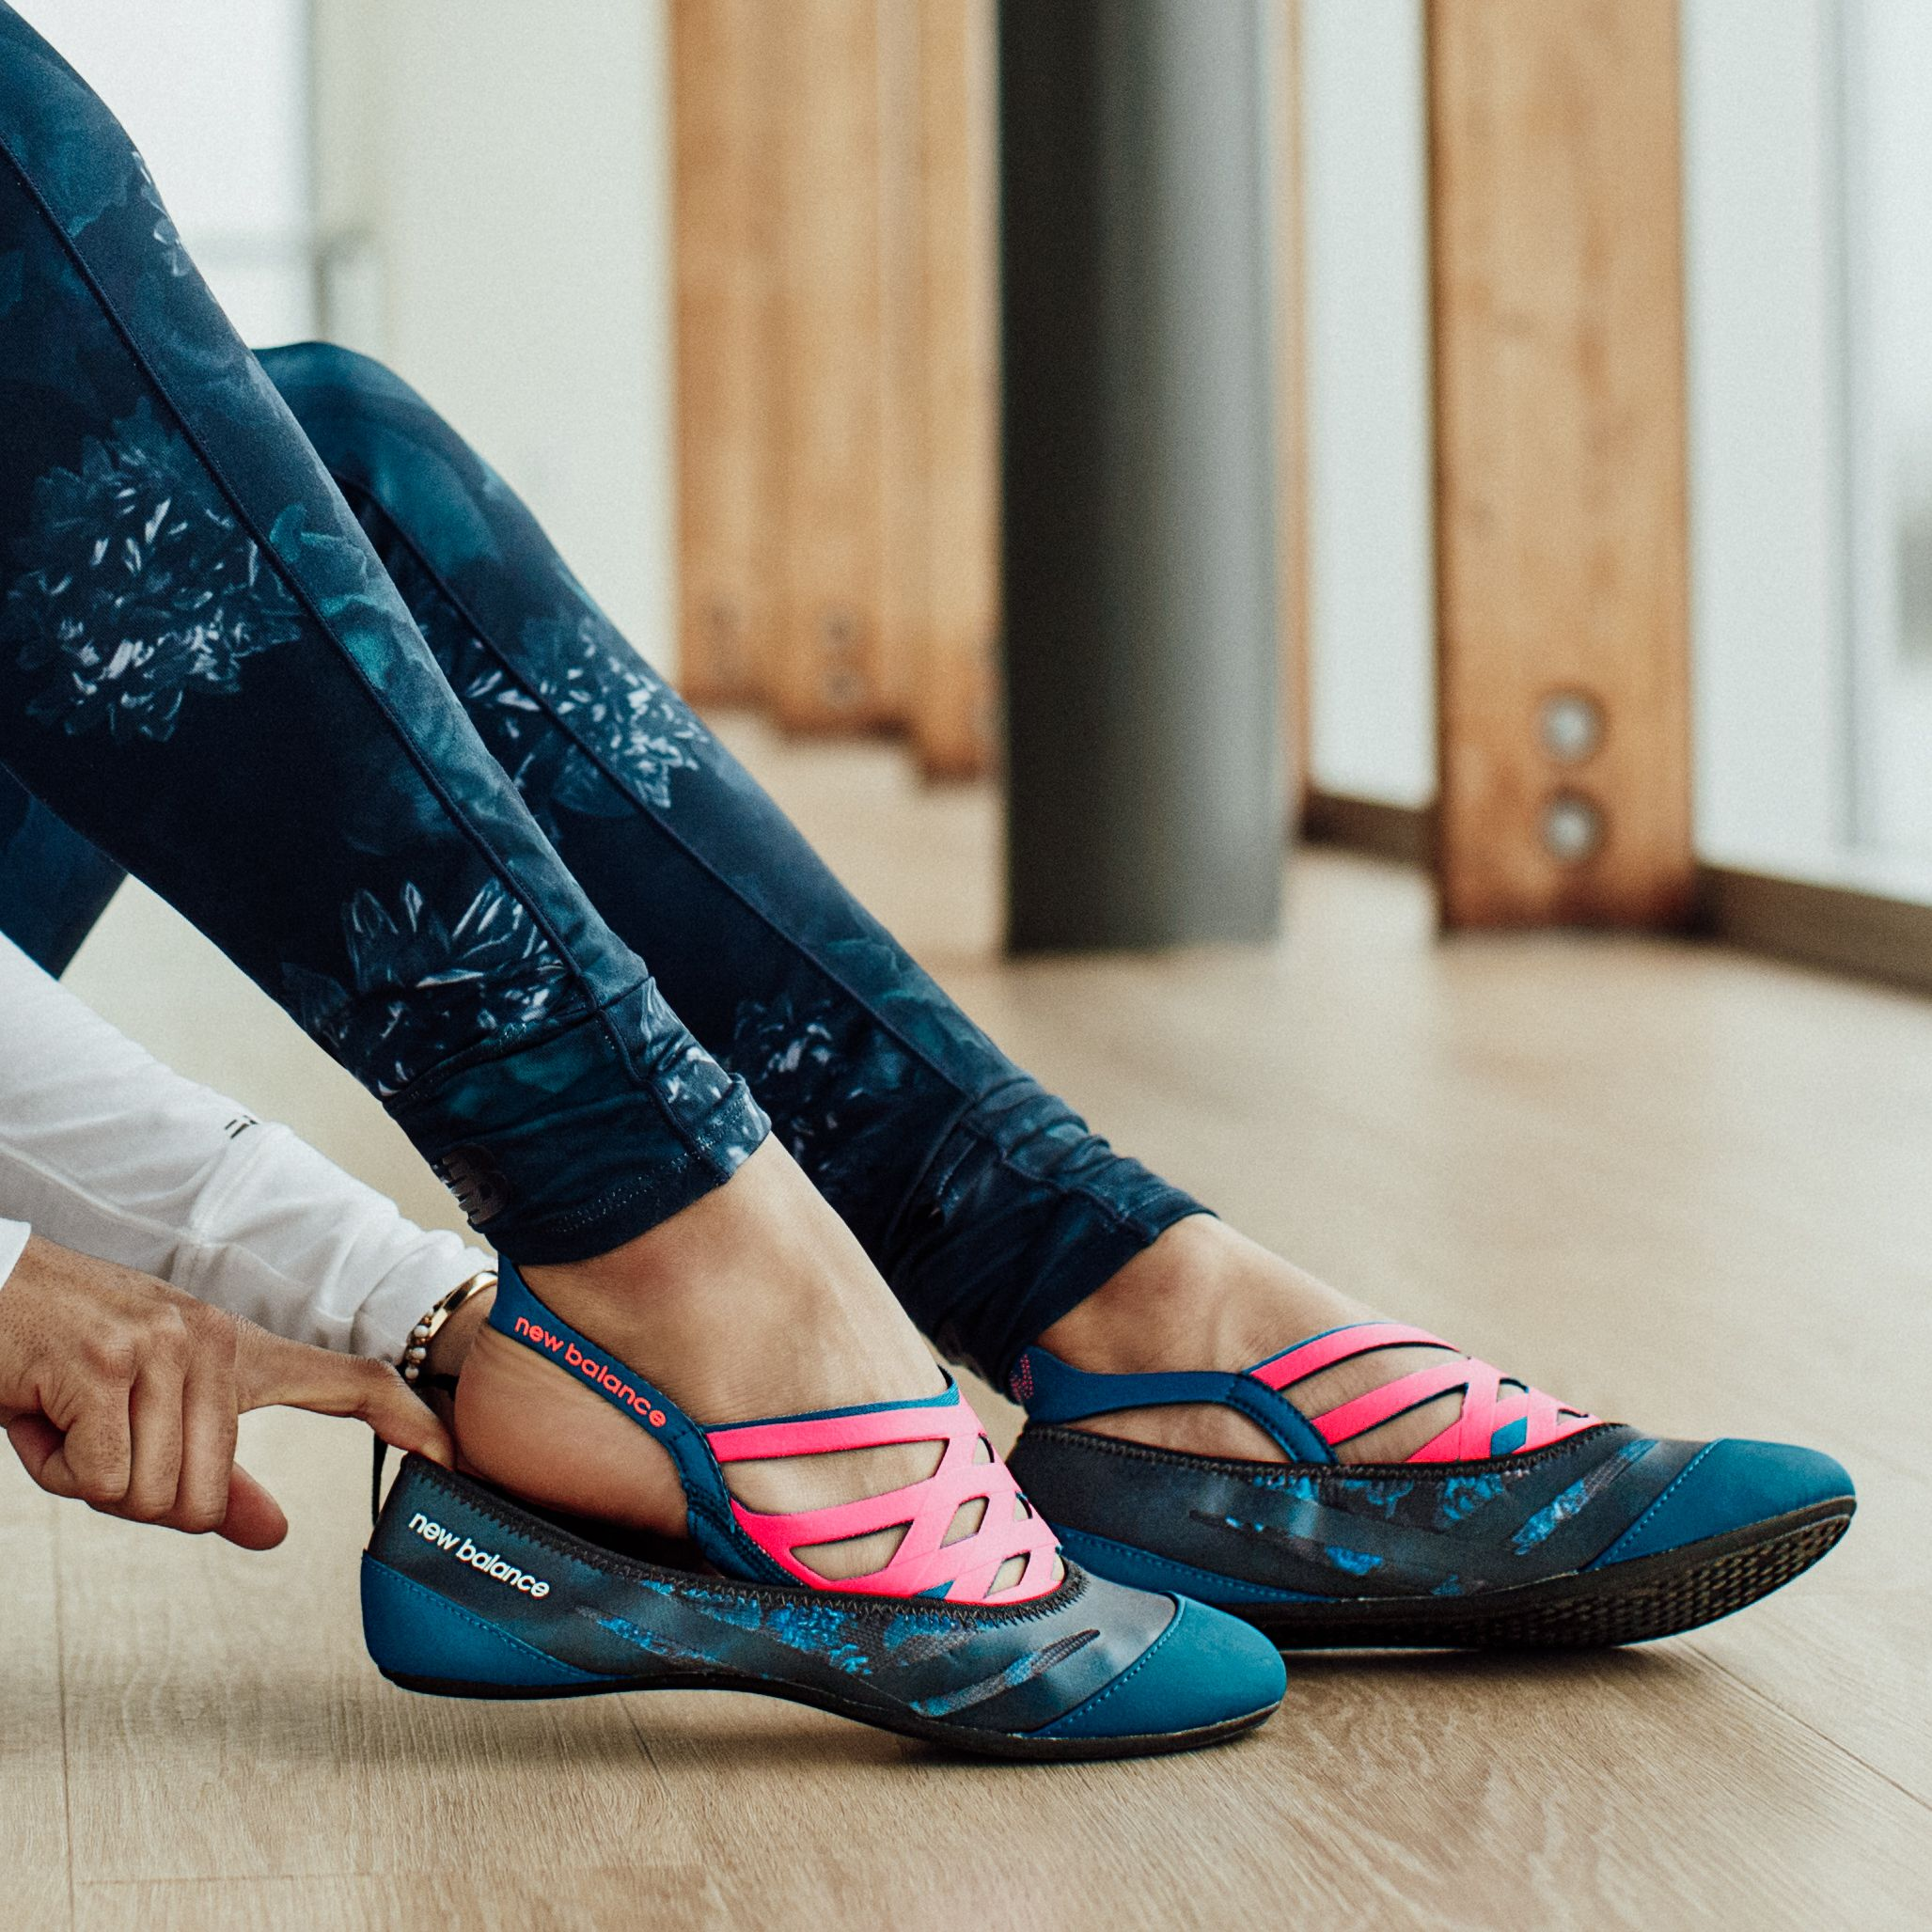 Barre shoes, Womens workout outfits